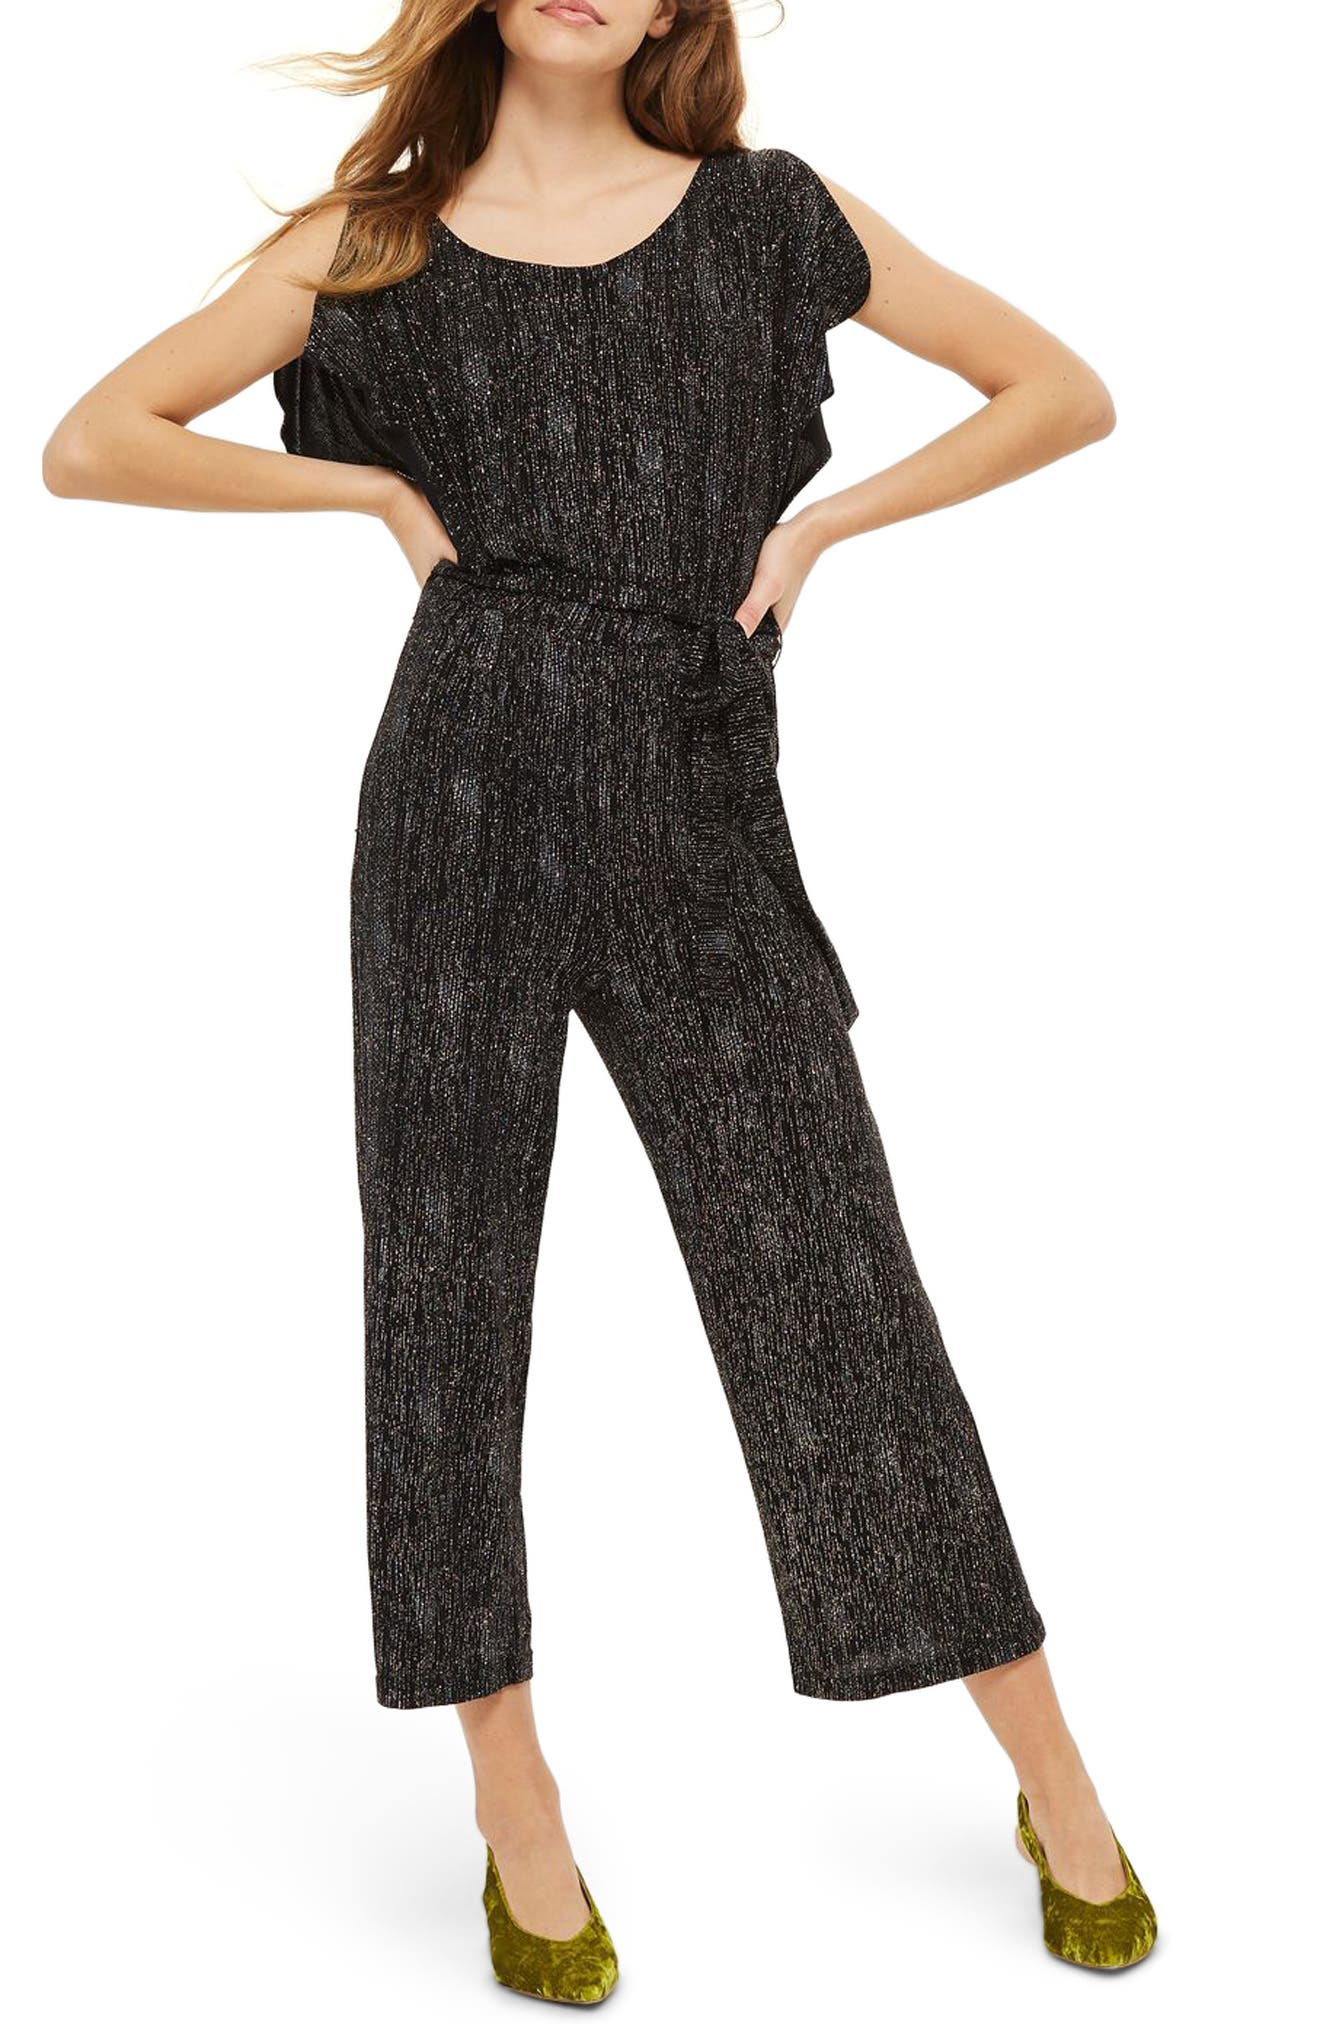 Rainbow Glitter Jumpsuit,                             Main thumbnail 1, color,                             001